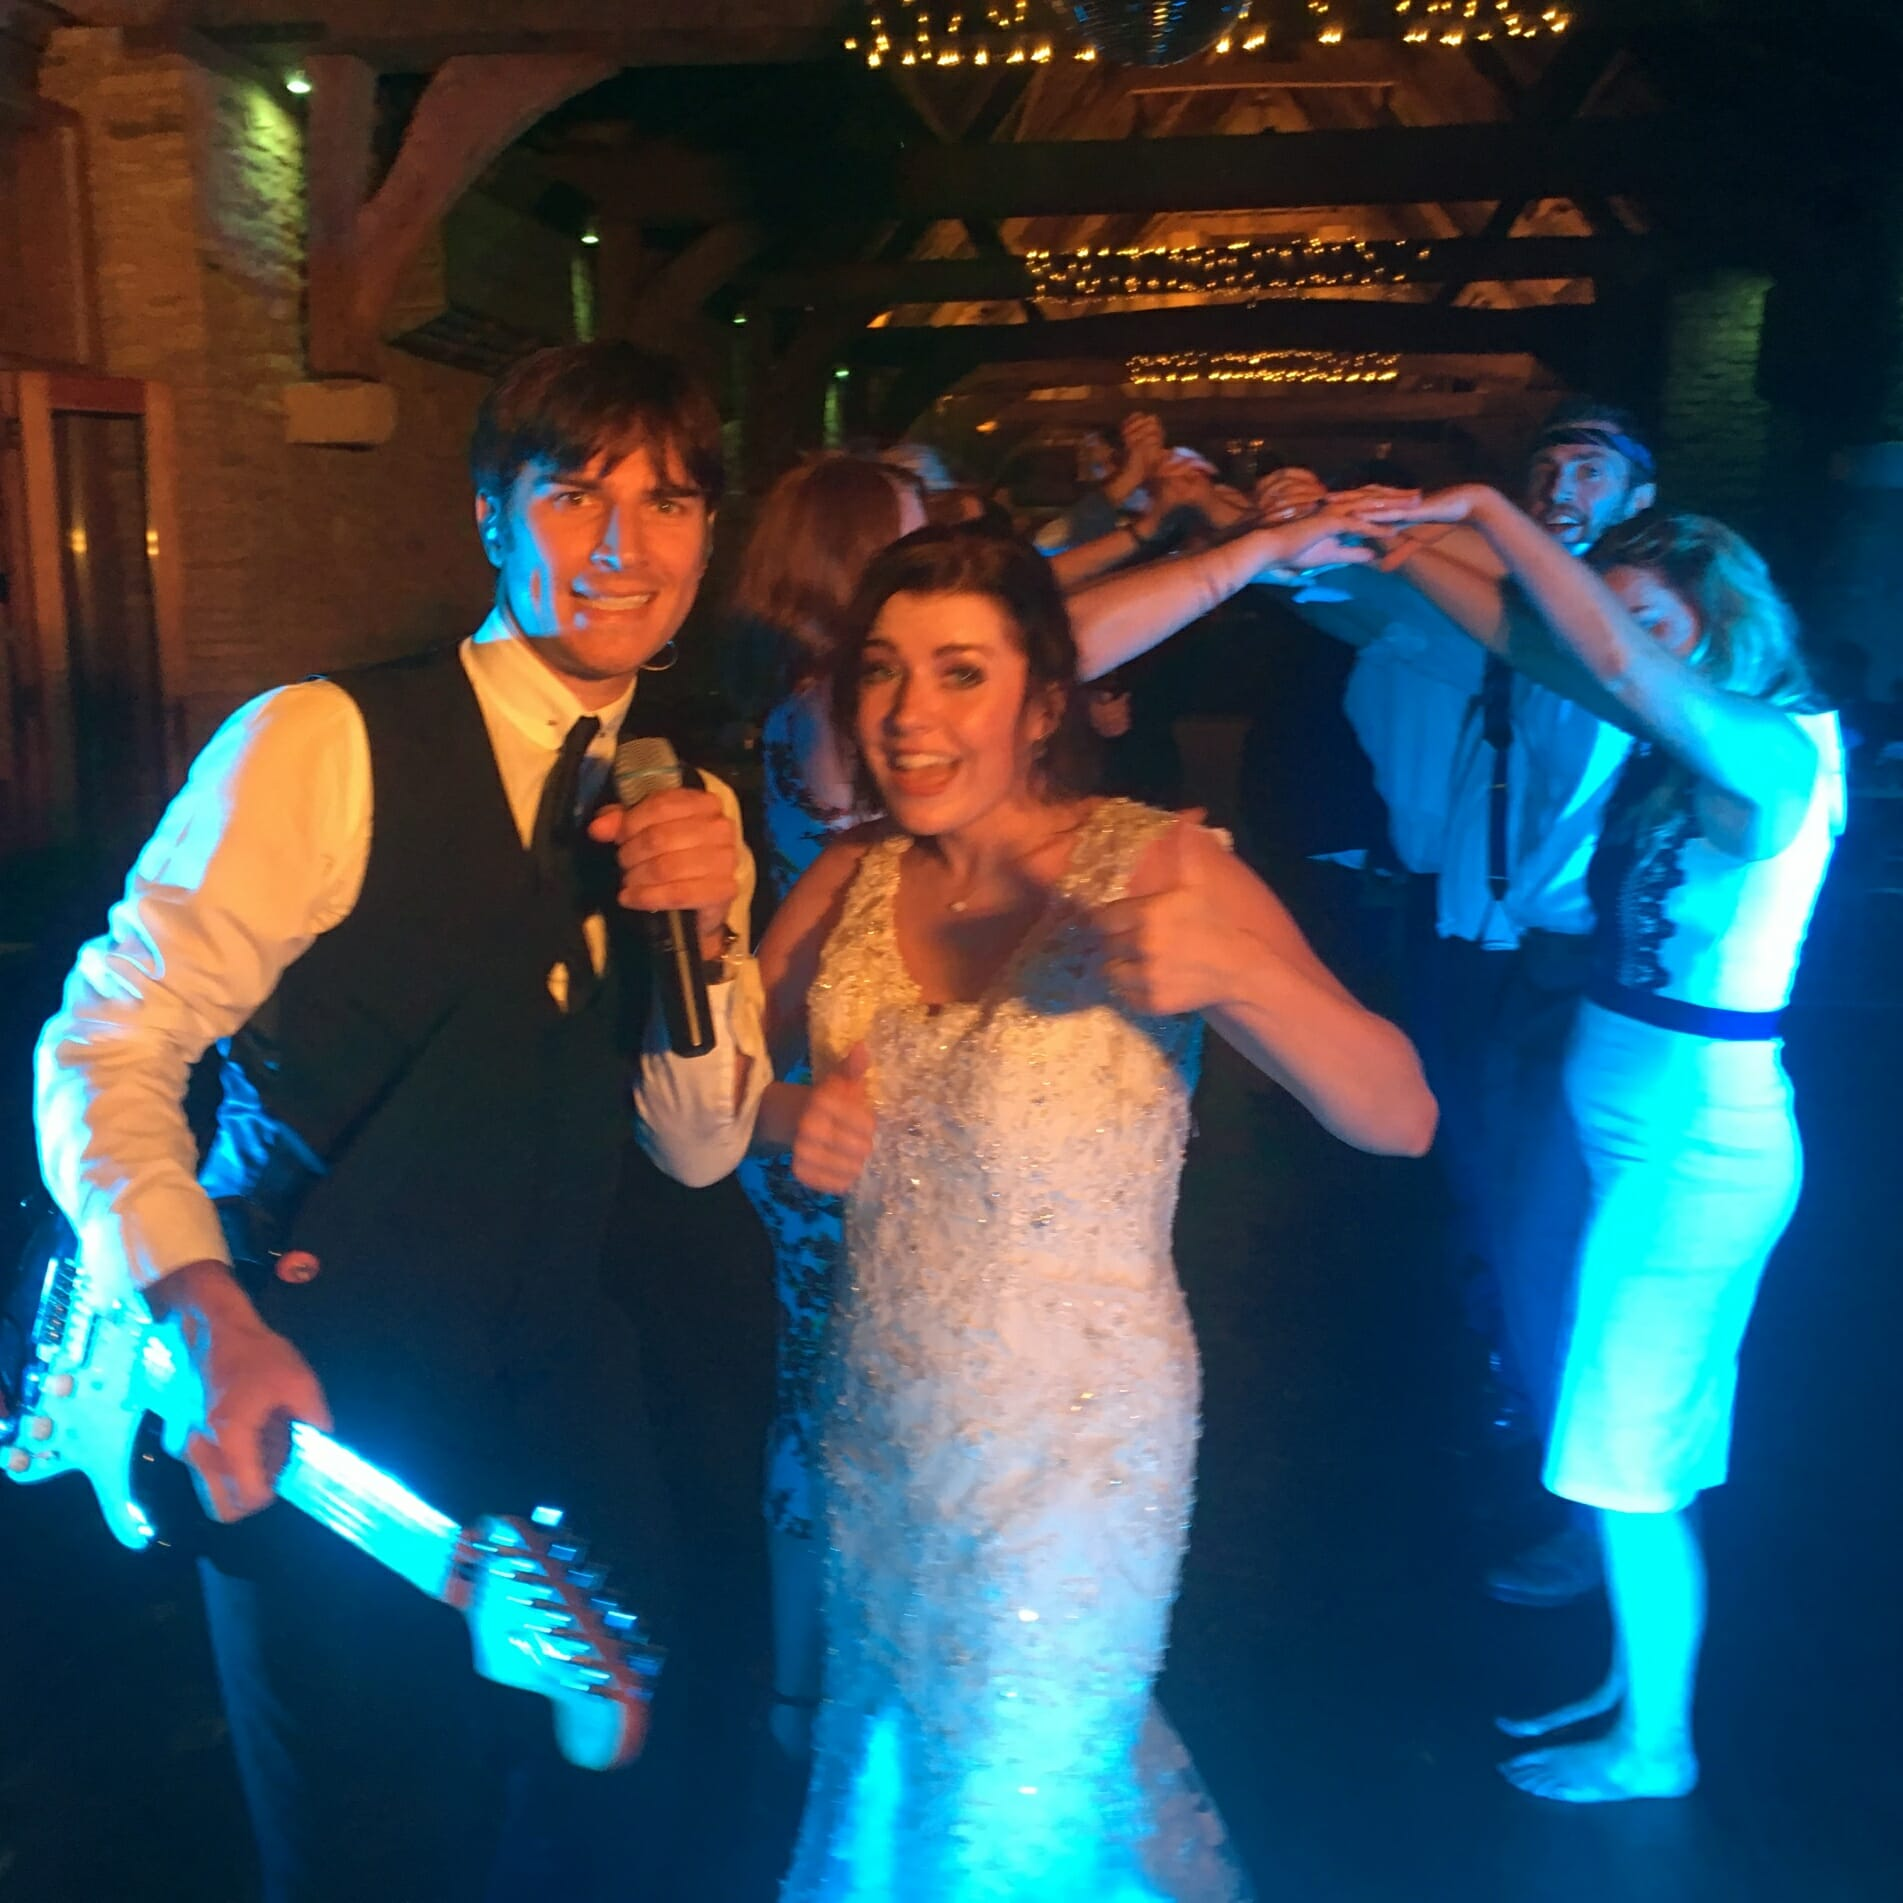 Tythe Barn BIcester, The Zoots, The Zoots band, Wedding band BIcester, Wedding band Oxford, Zoots band, Awesome Band, Band in Wiltshire, Party Band, Barn Wedding, Uk Wedding, Countryside wedding